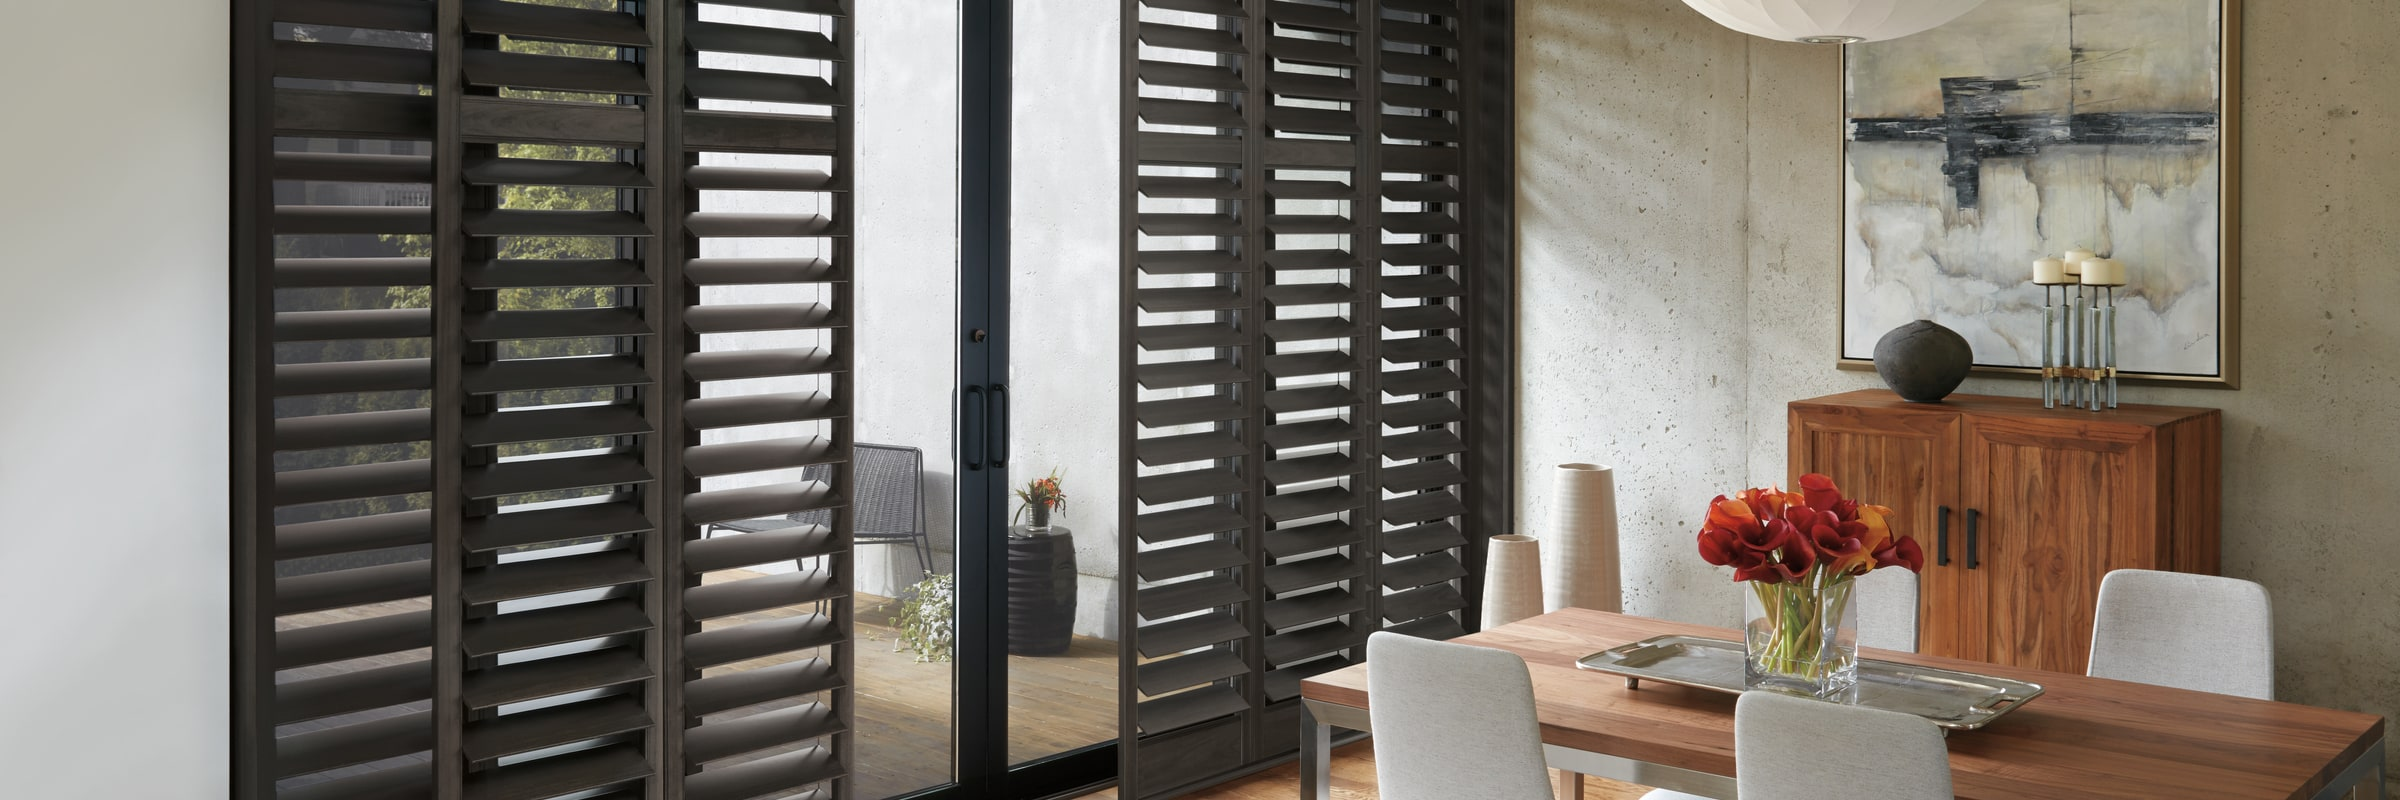 Hybrid interior shutters in Hybrid Urban Grey - NewStyle